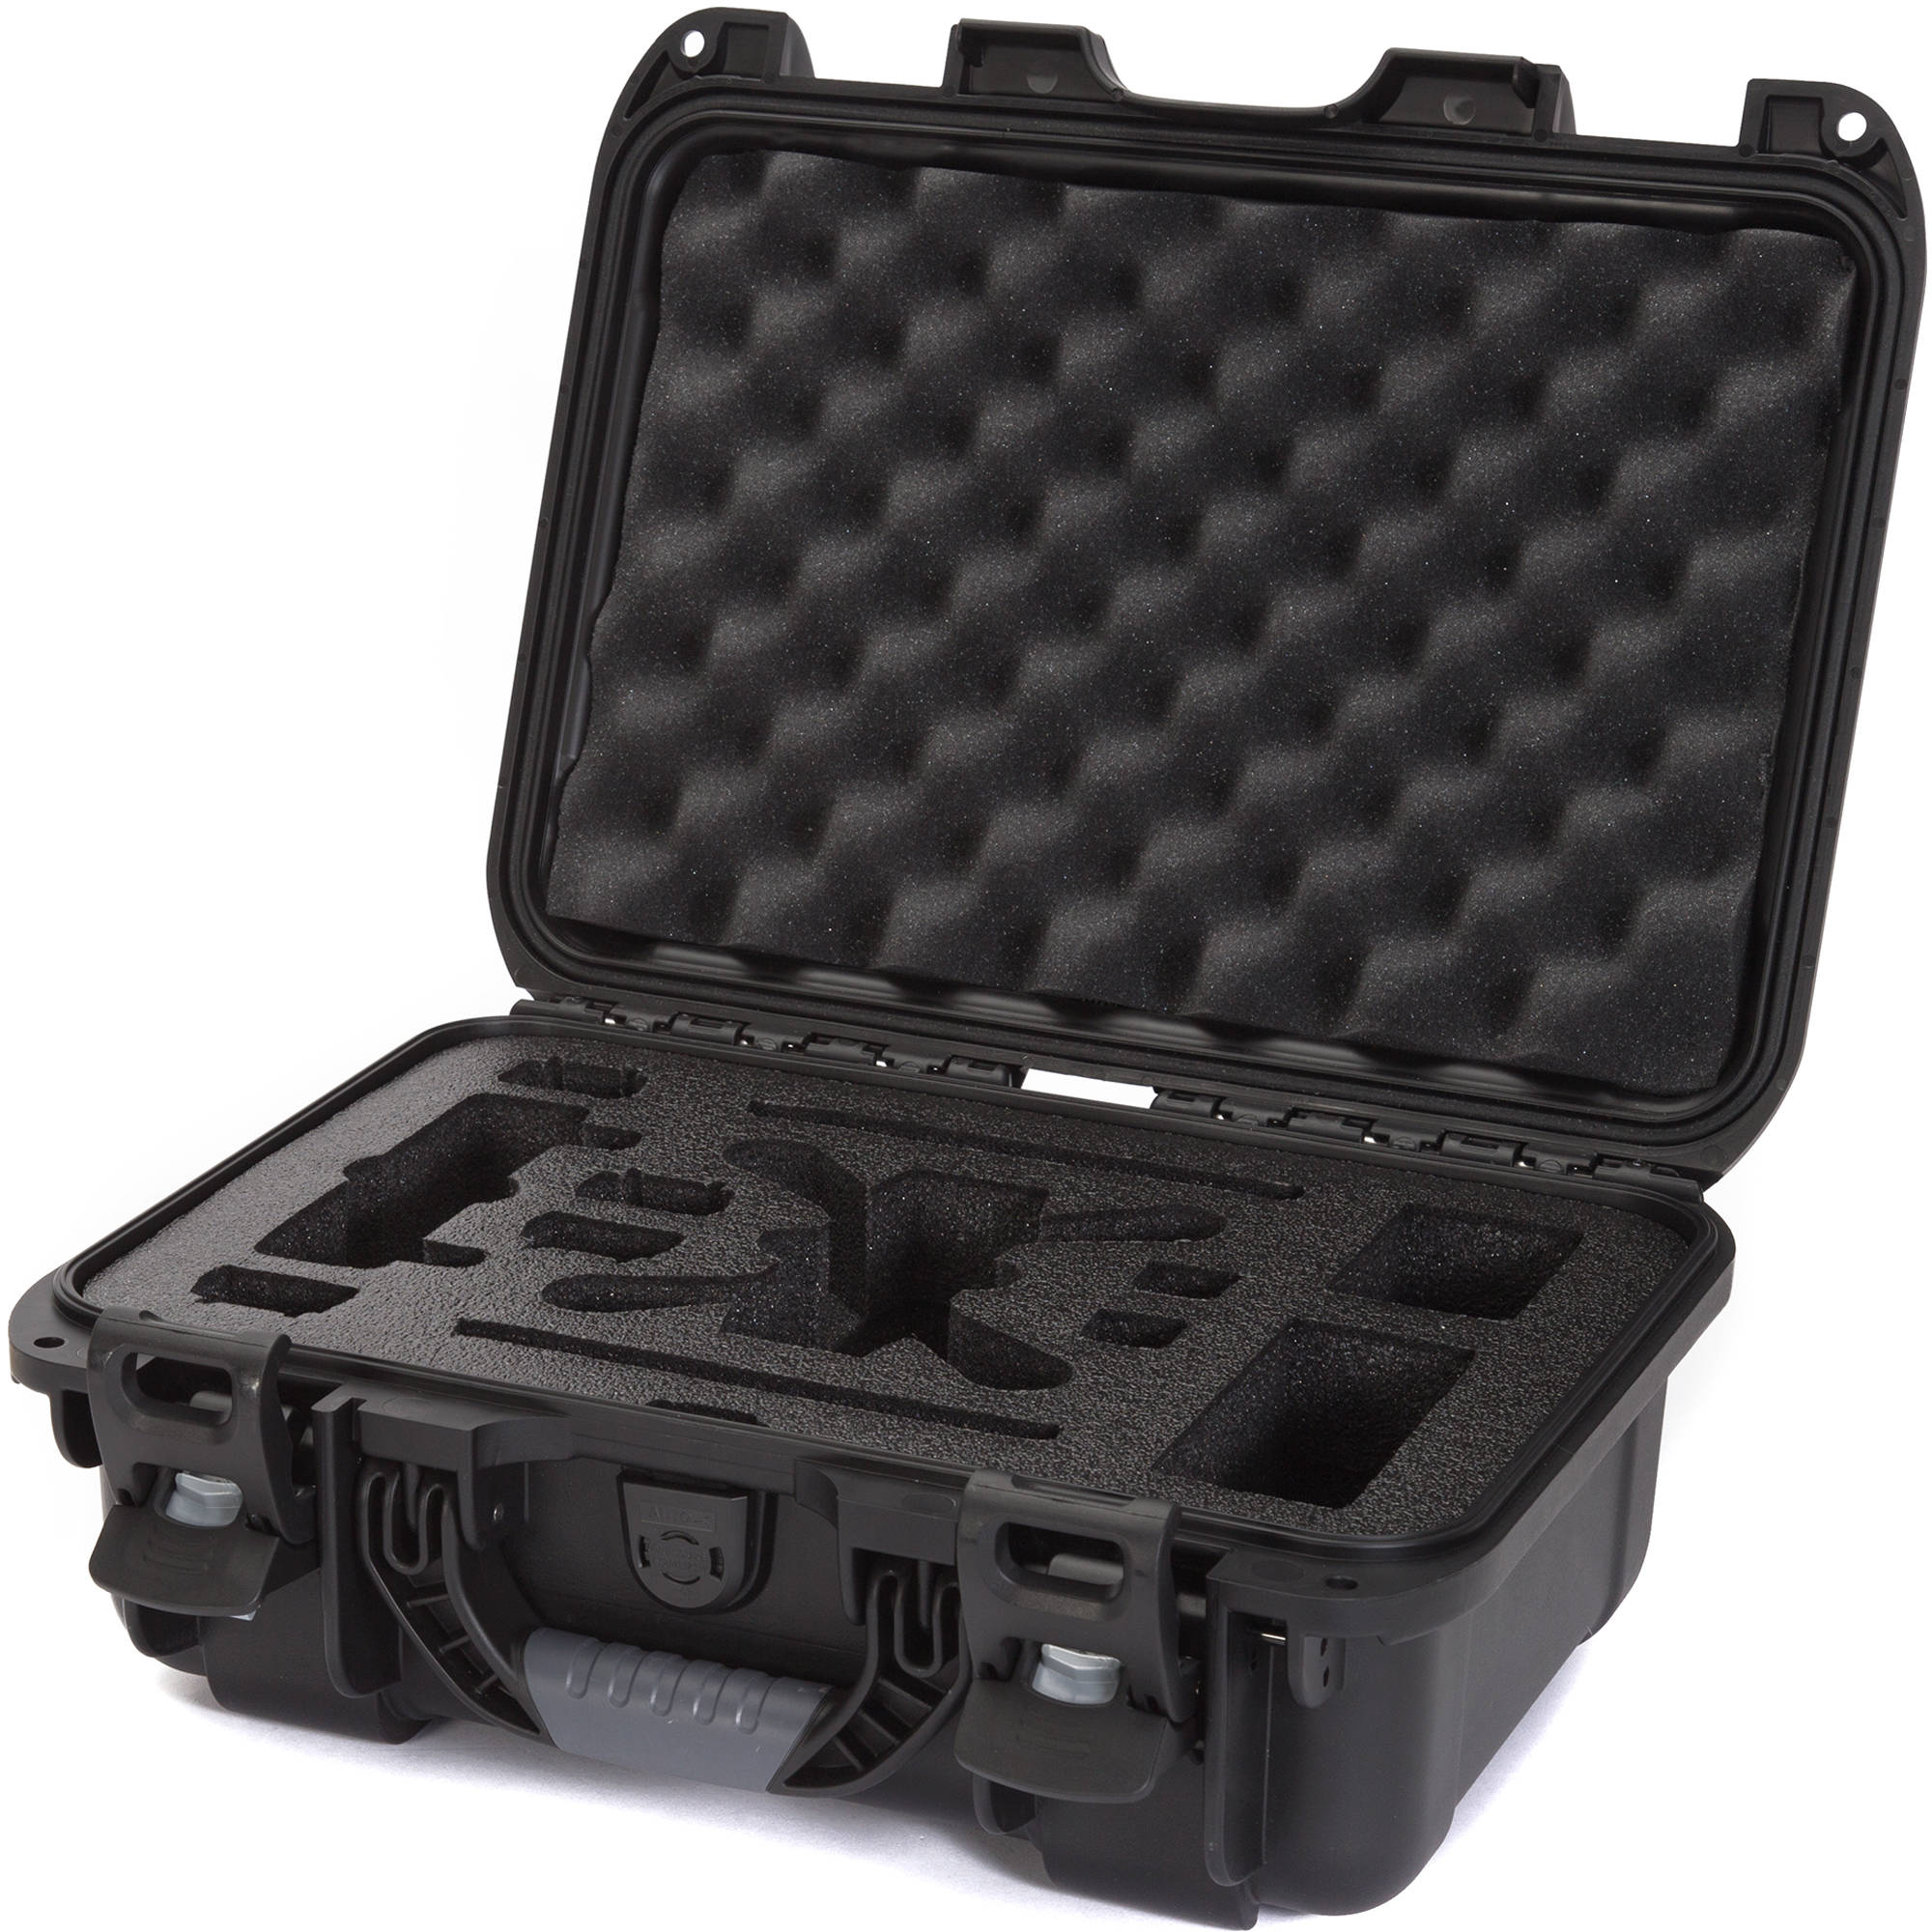 Nanuk 915 Case for DJI Spark Fly More Combo (Black) 915-SPARK1 4d3118f56246